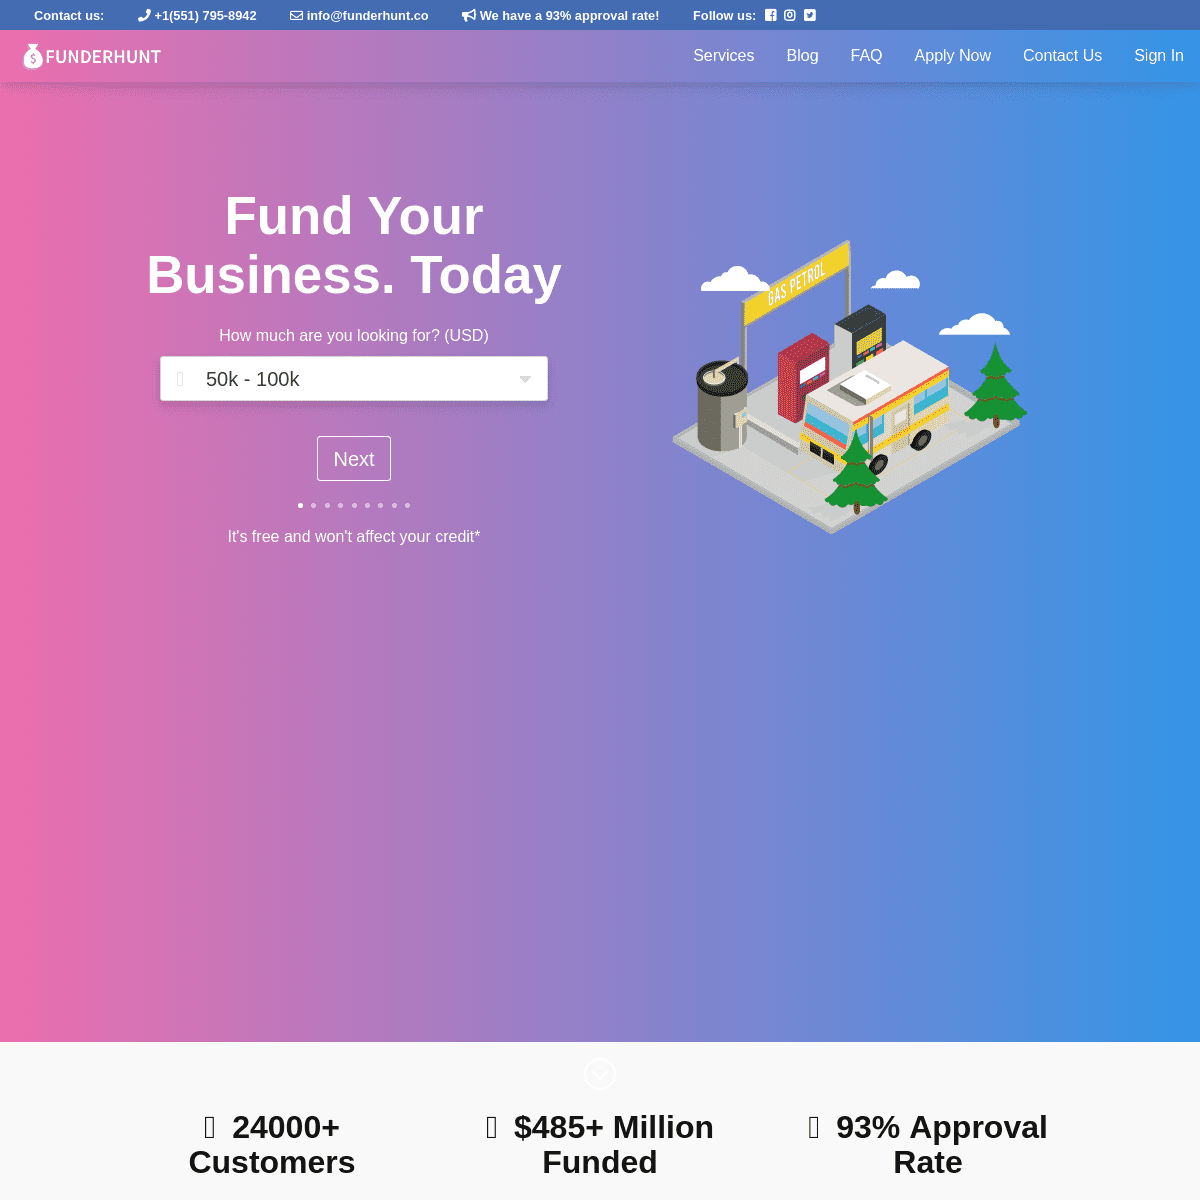 FunderHunt - Small business loans with $0 Broker Fee within 24 hours